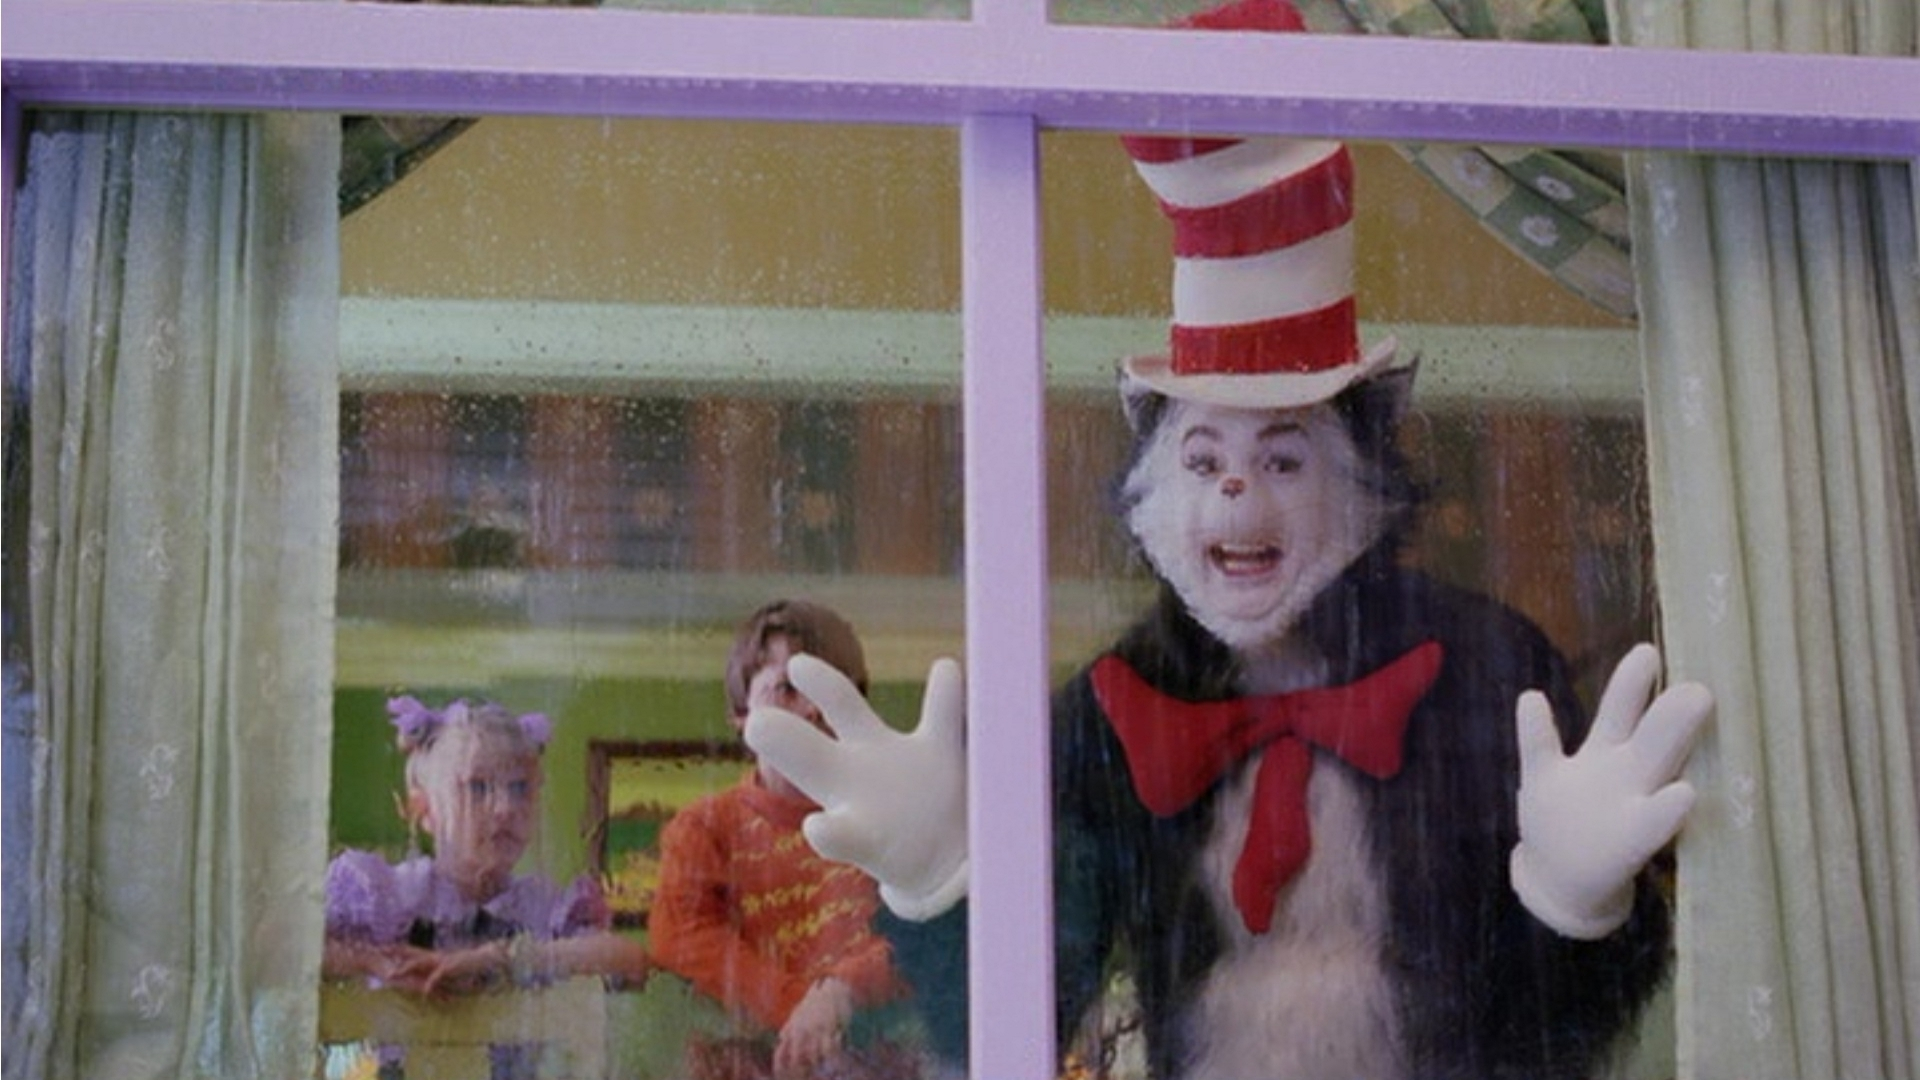 Mr Vompatatat Cat In The Hat